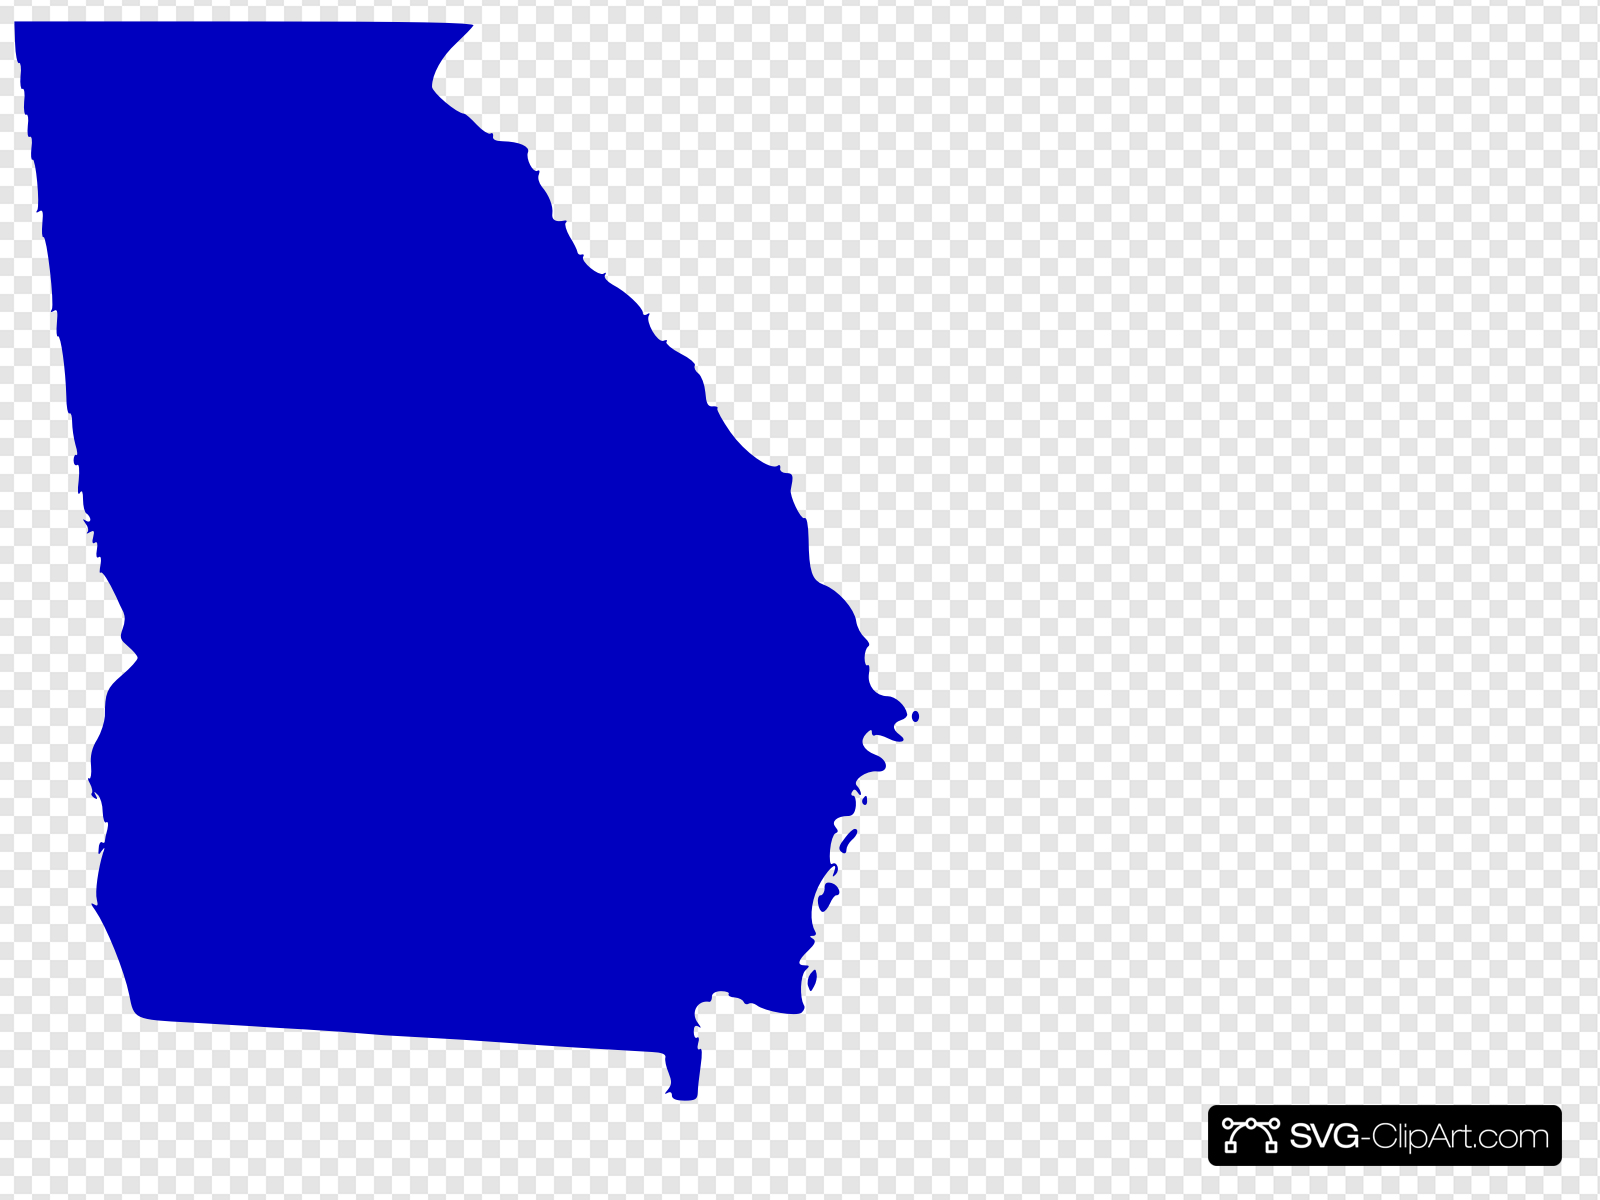 Georgia State Map Outline Solid Clip art, Icon and SVG.